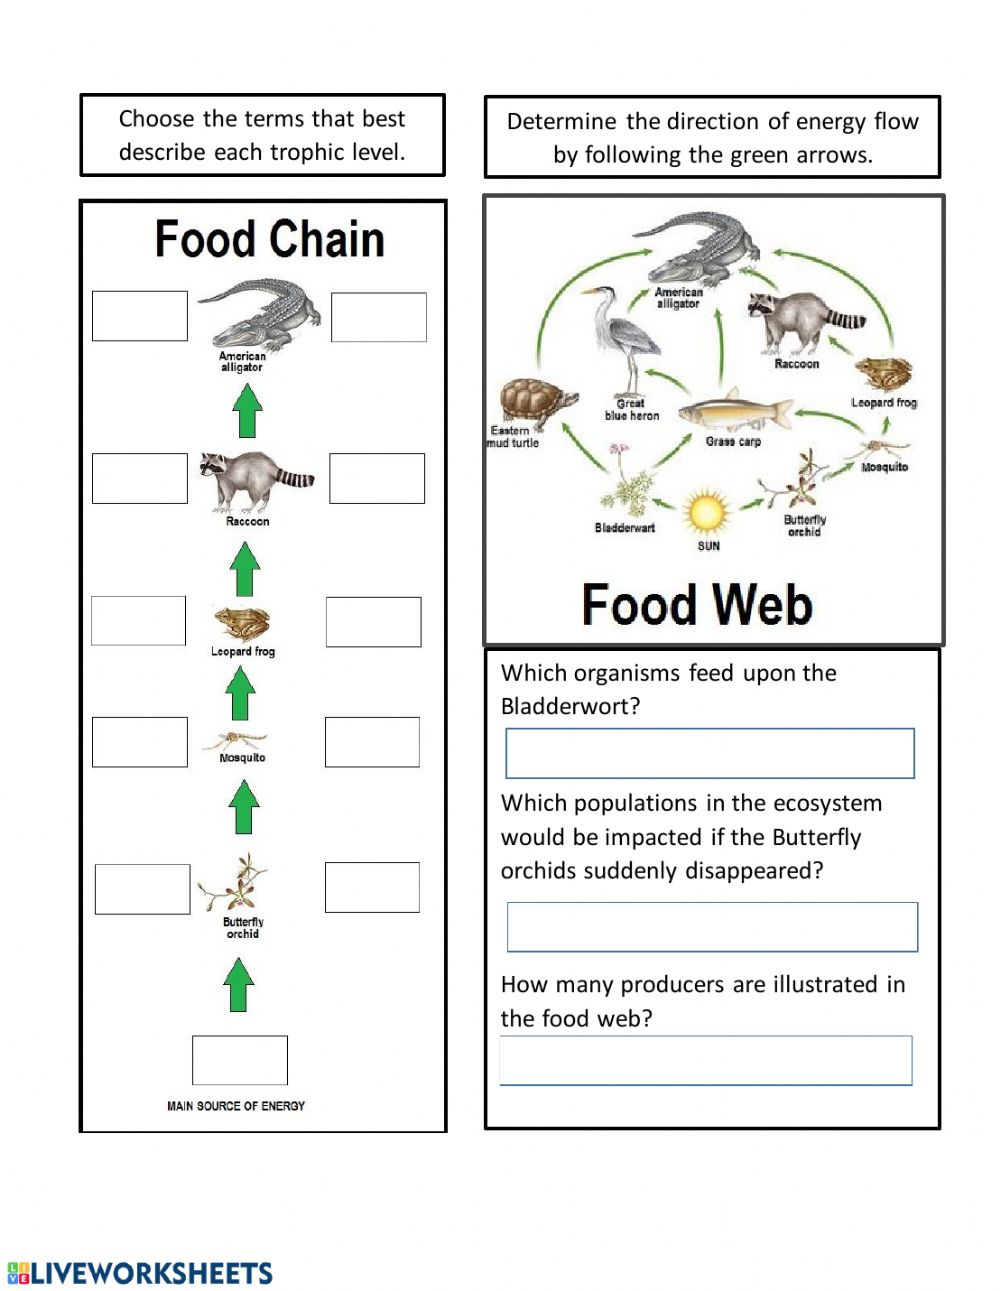 Live Work Sheet: Energy Flow in Ecosystems worksheet